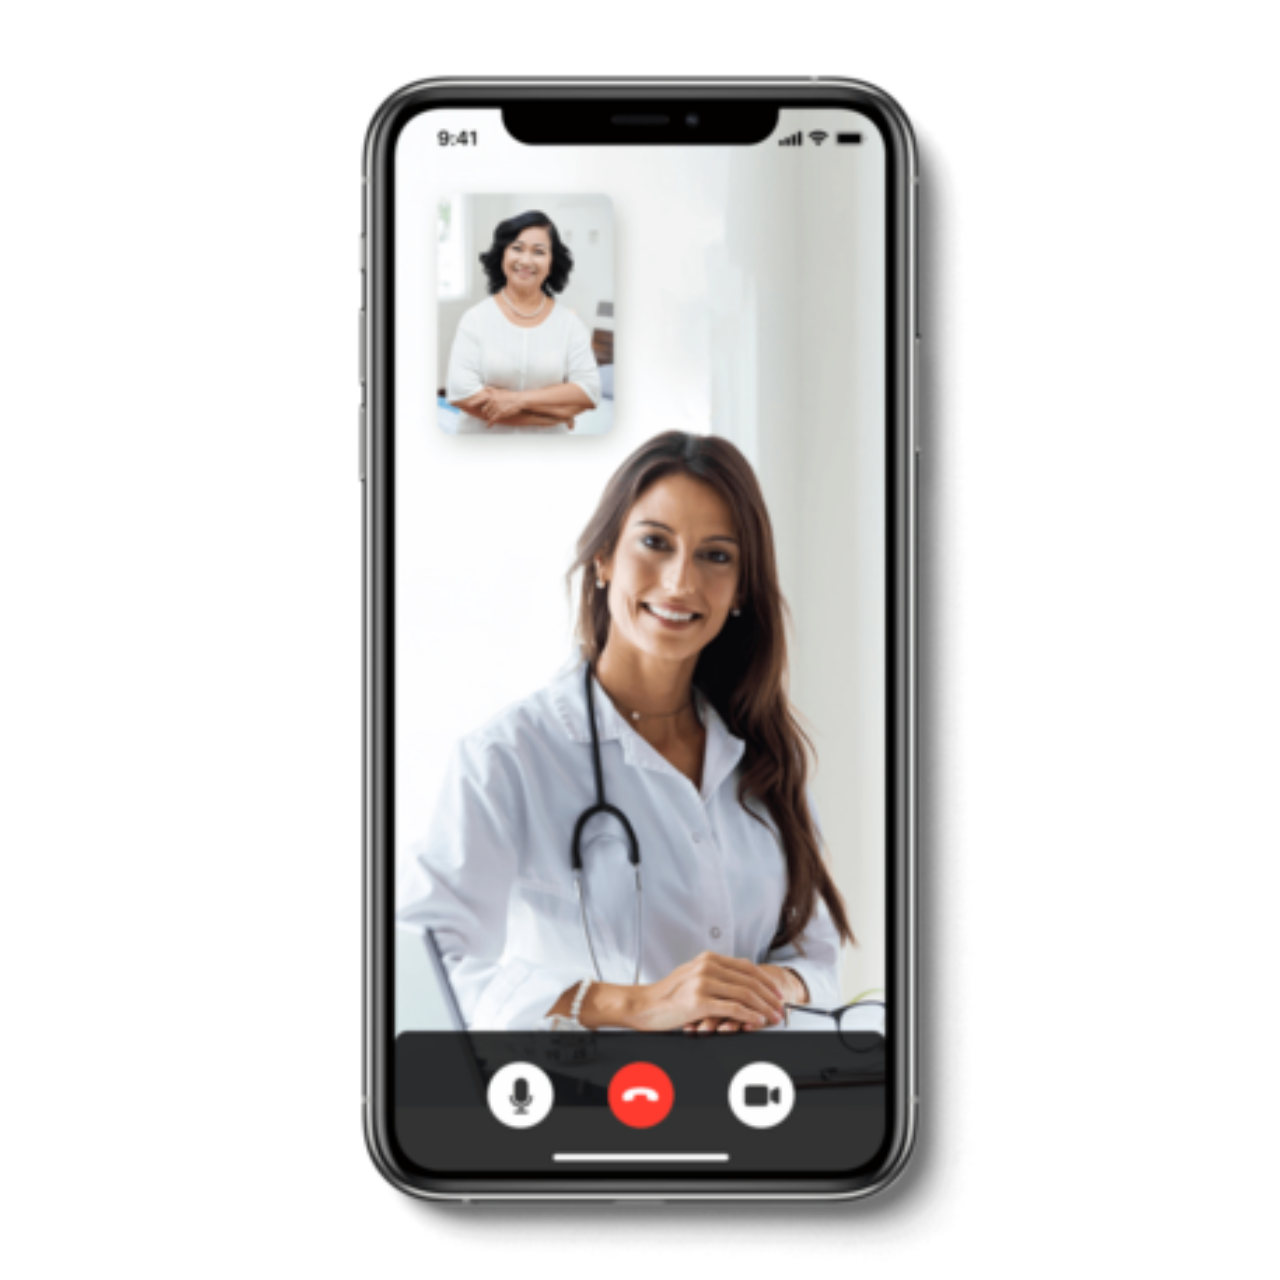 Medical Services App Video Call